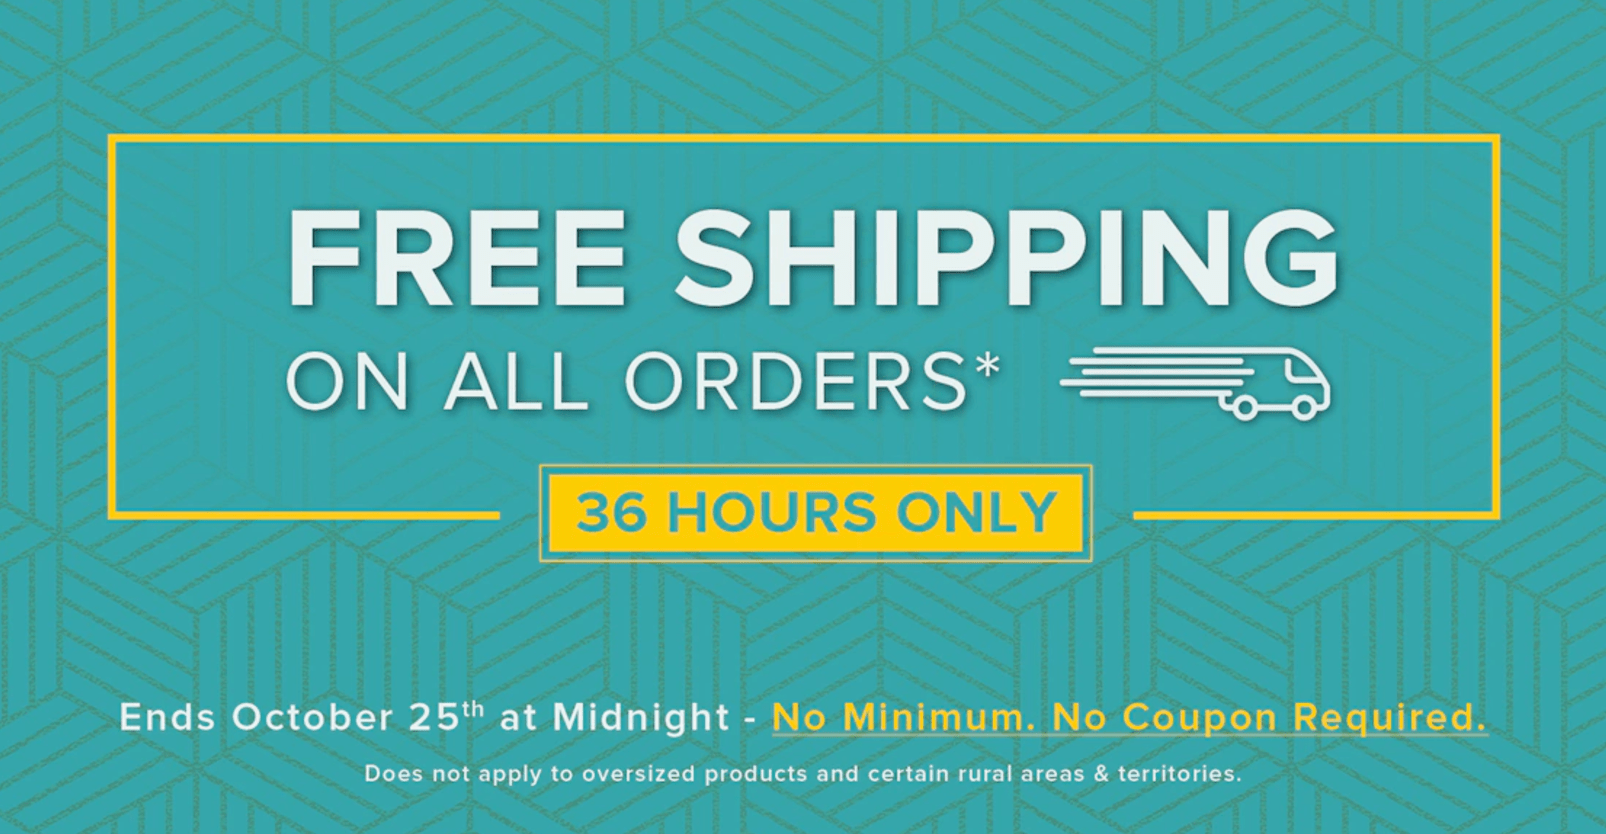 Linen Chest Canada Deal: FREE Shipping on ALL Orders *36 Hours Only*